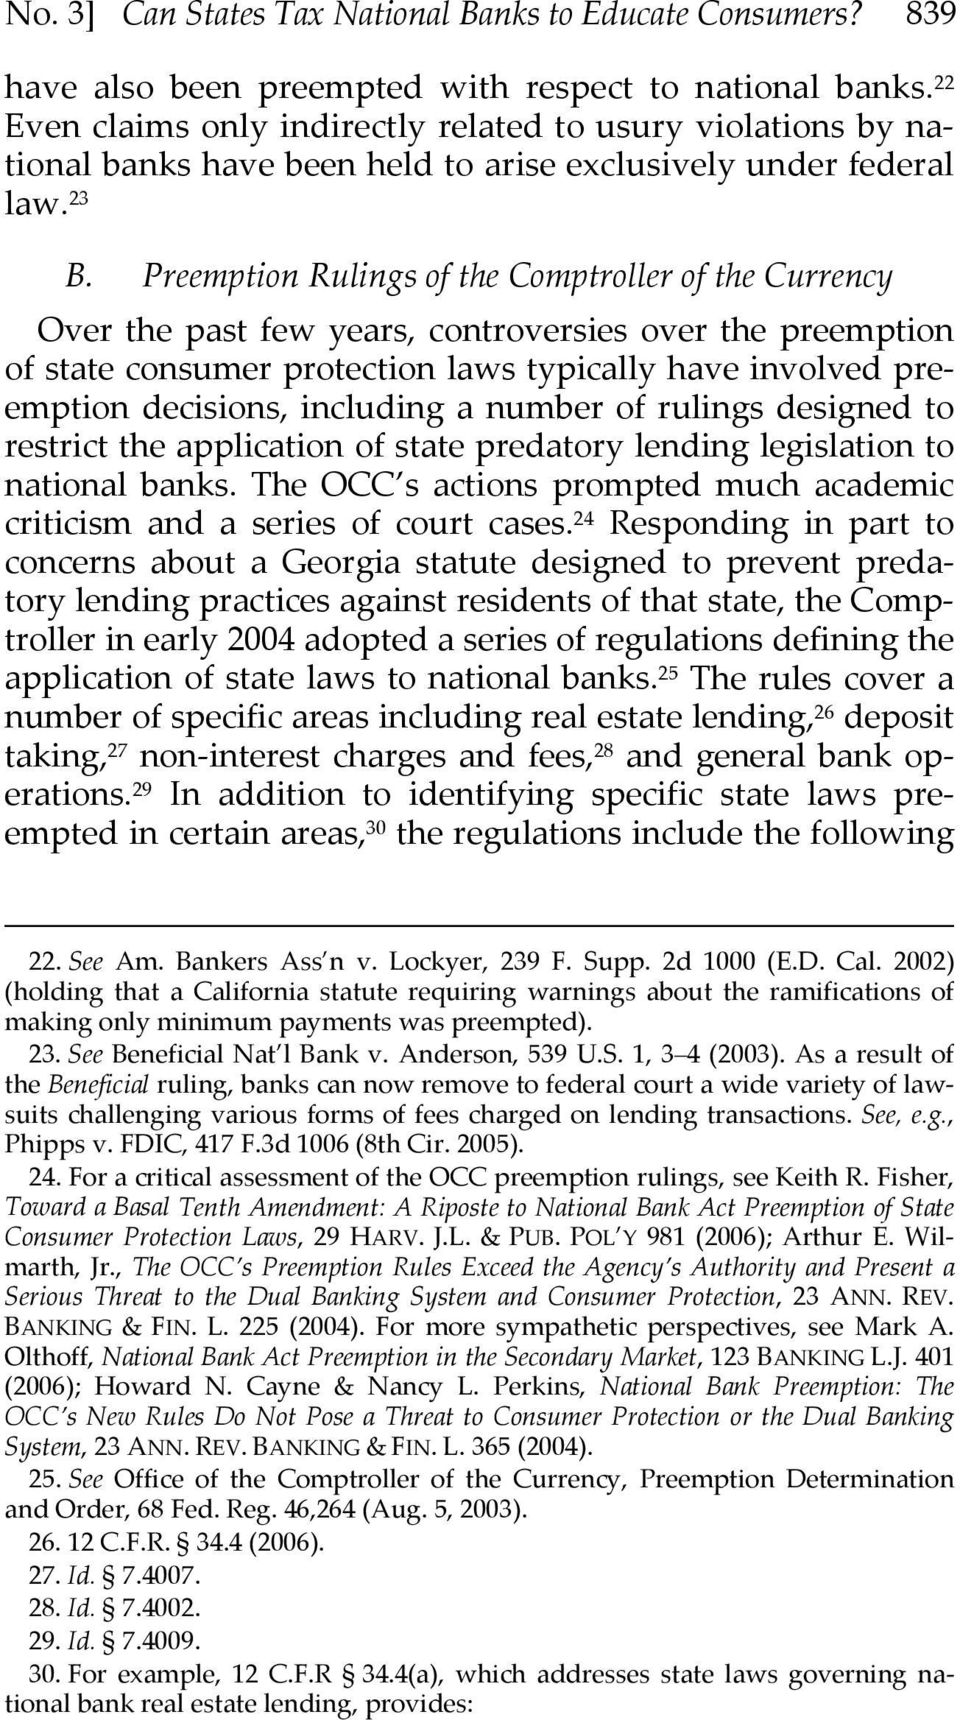 Preemption Rulings of the Comptroller of the Currency Over the past few years, controversies over the preemption of state consumer protection laws typically have involved preemption decisions,